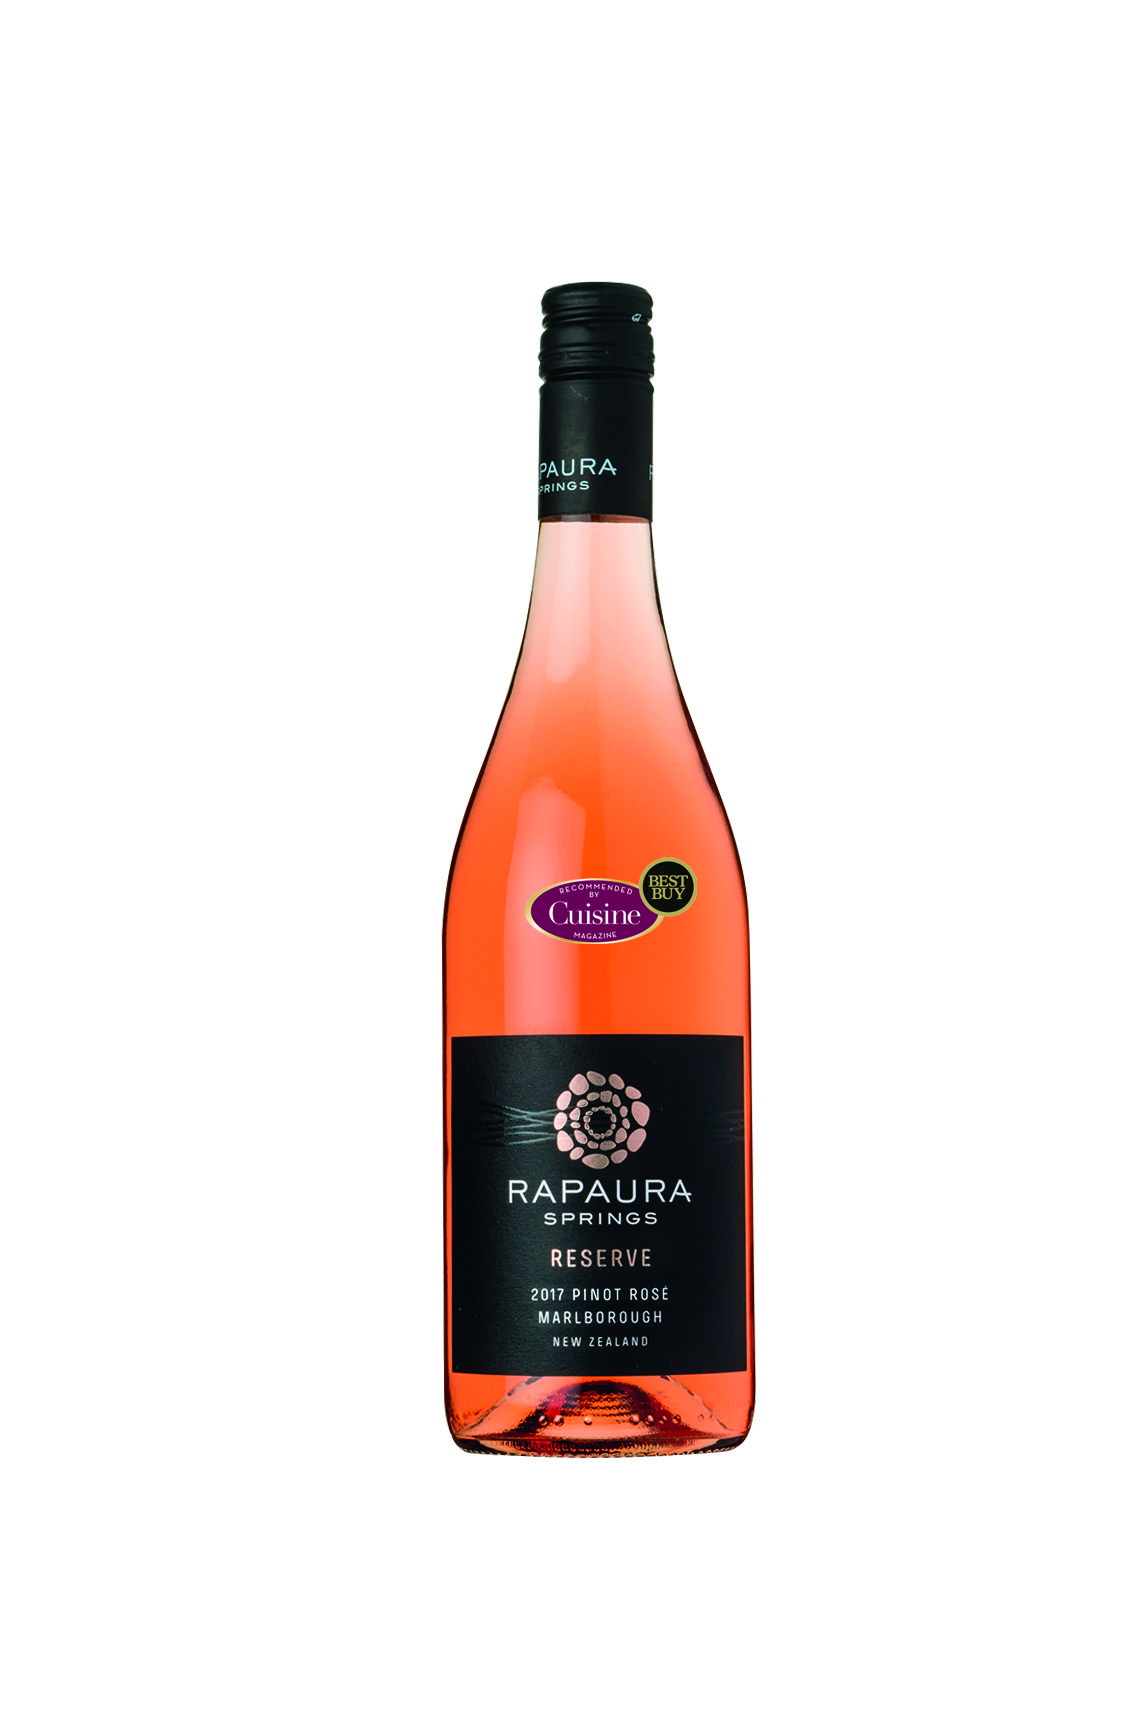 Rapaura Springs Reserve Marlborough Pinot Rosé 2017